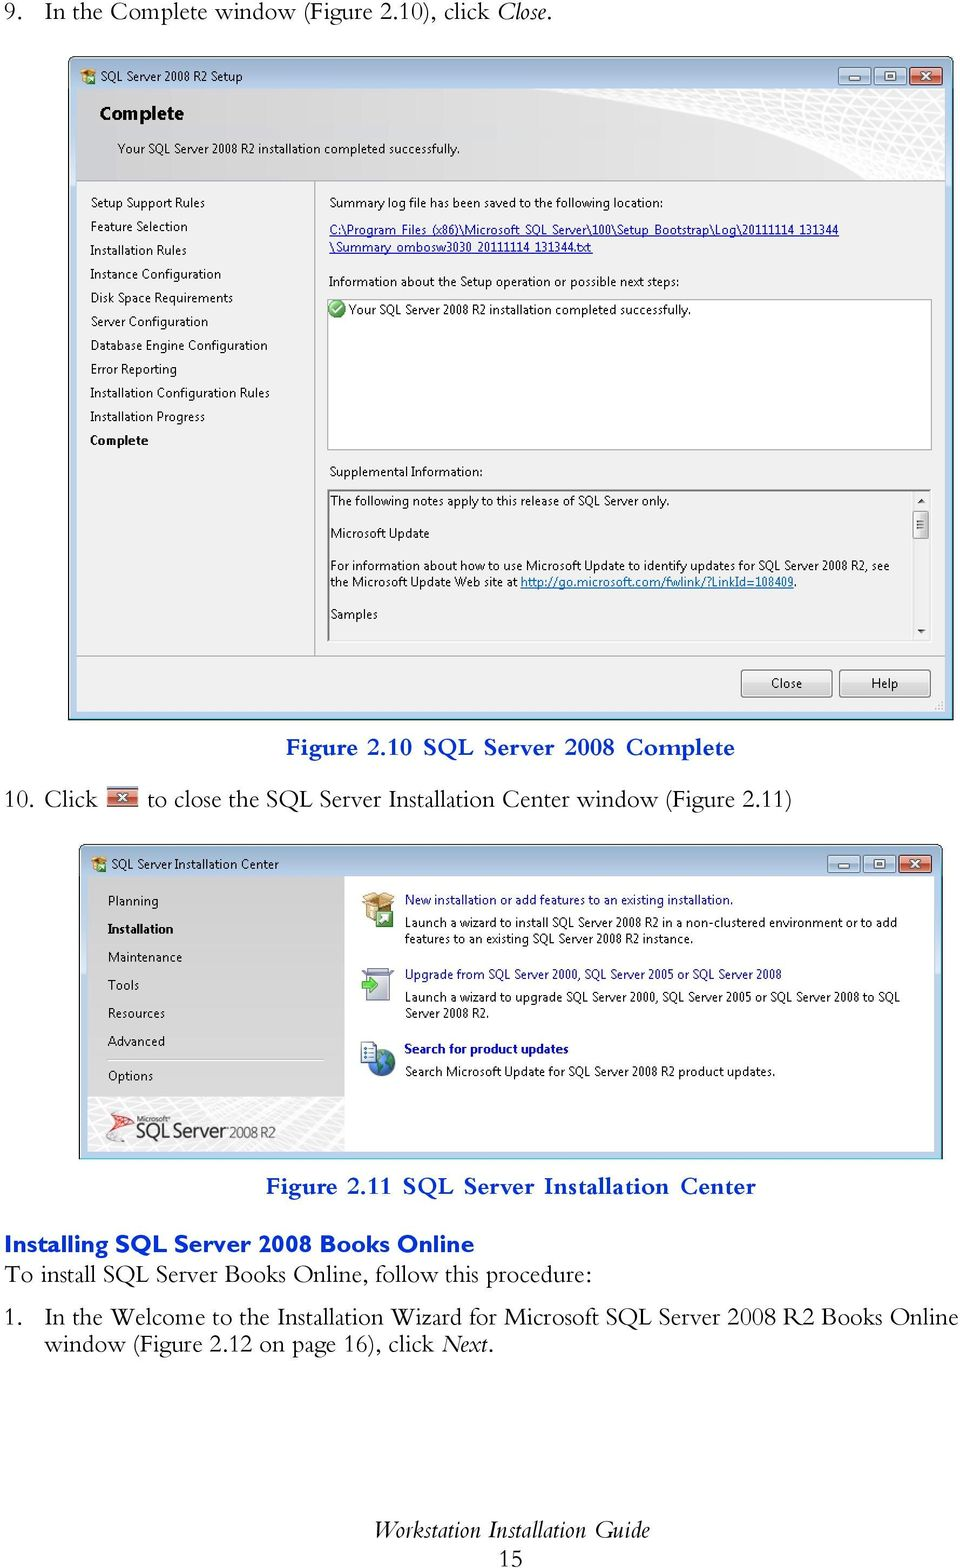 11 SQL Server Installation Center Installing SQL Server 2008 Books Online To install SQL Server Books Online, follow